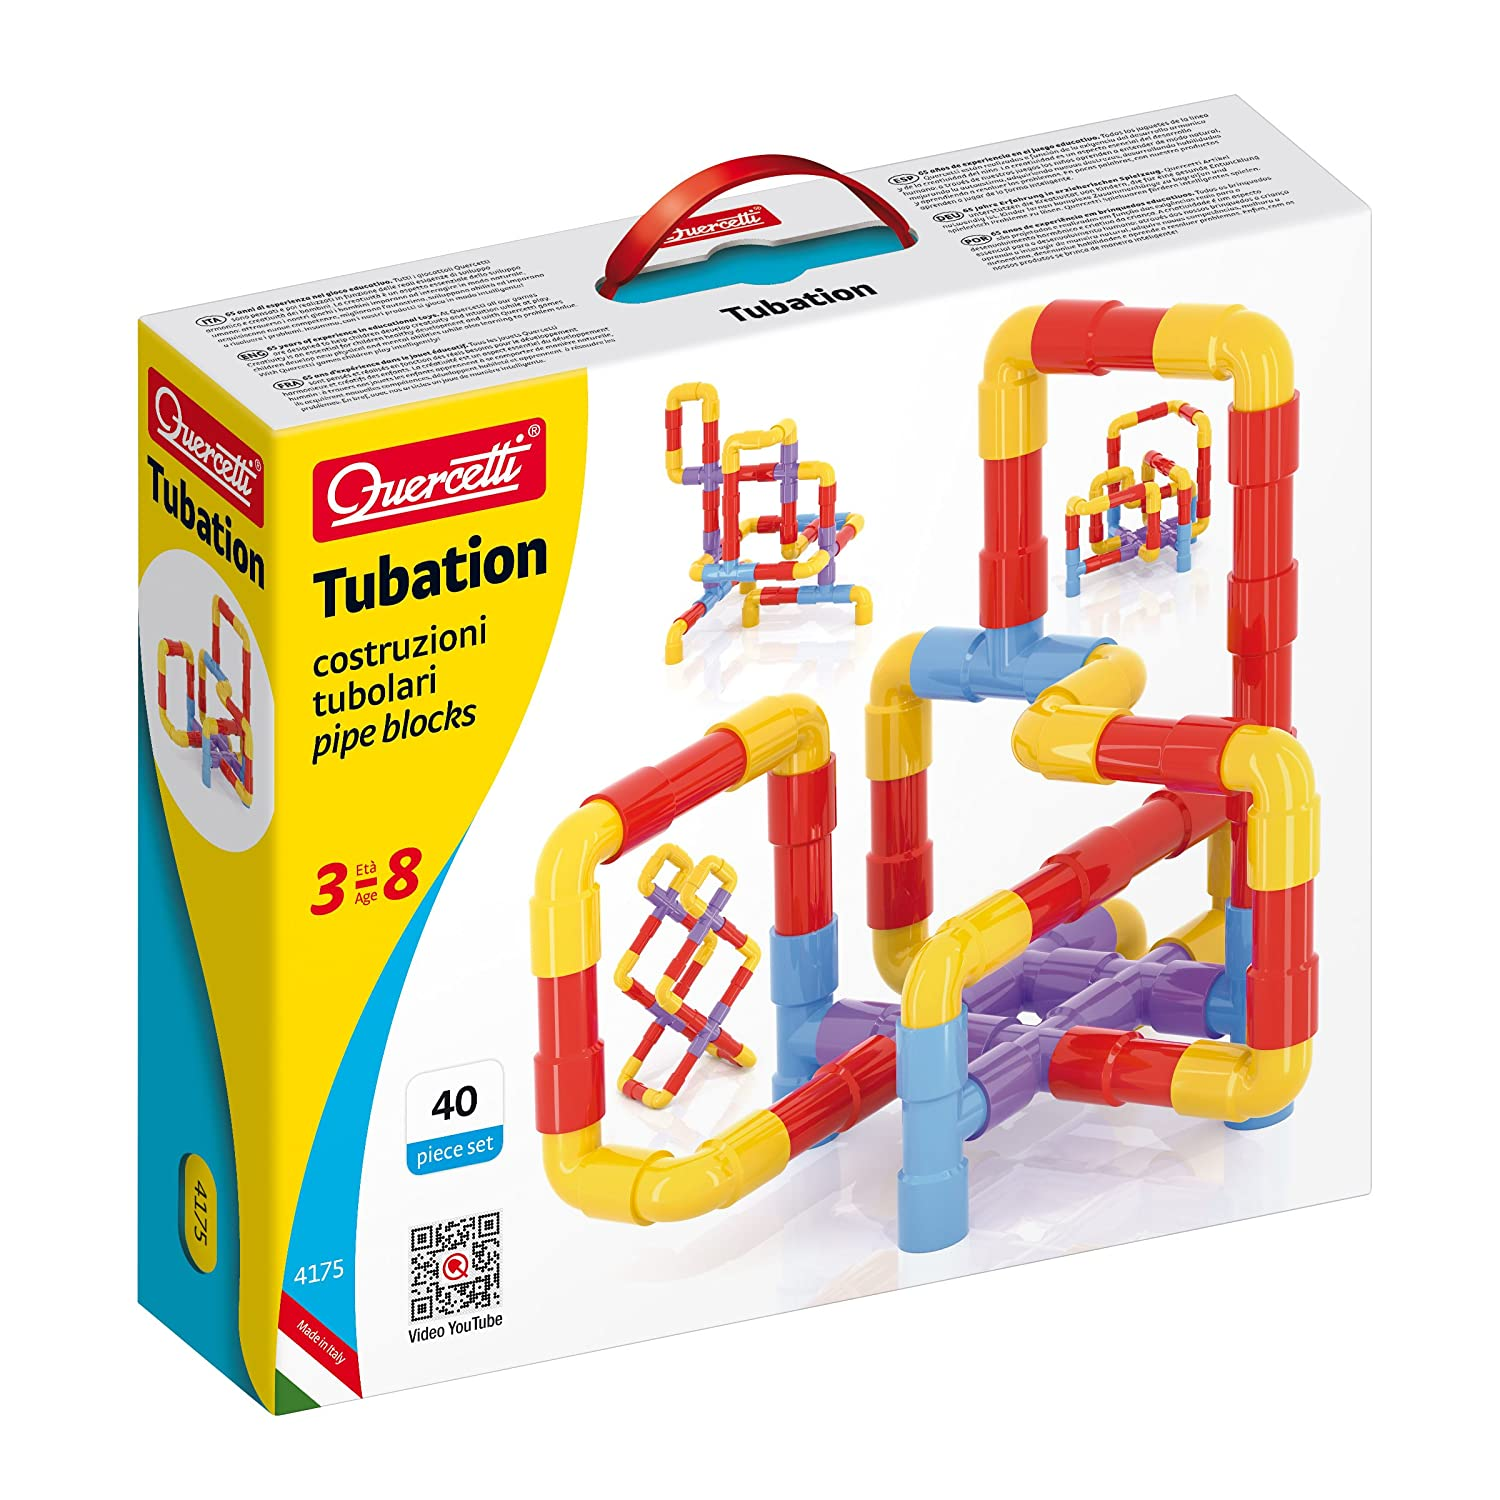 Quercetti Tubation - 40 Piece Interlocking Pipeline Maze Building Set - Open Ended Construction Toy for Ages 3 and Up (Made in Italy) Review